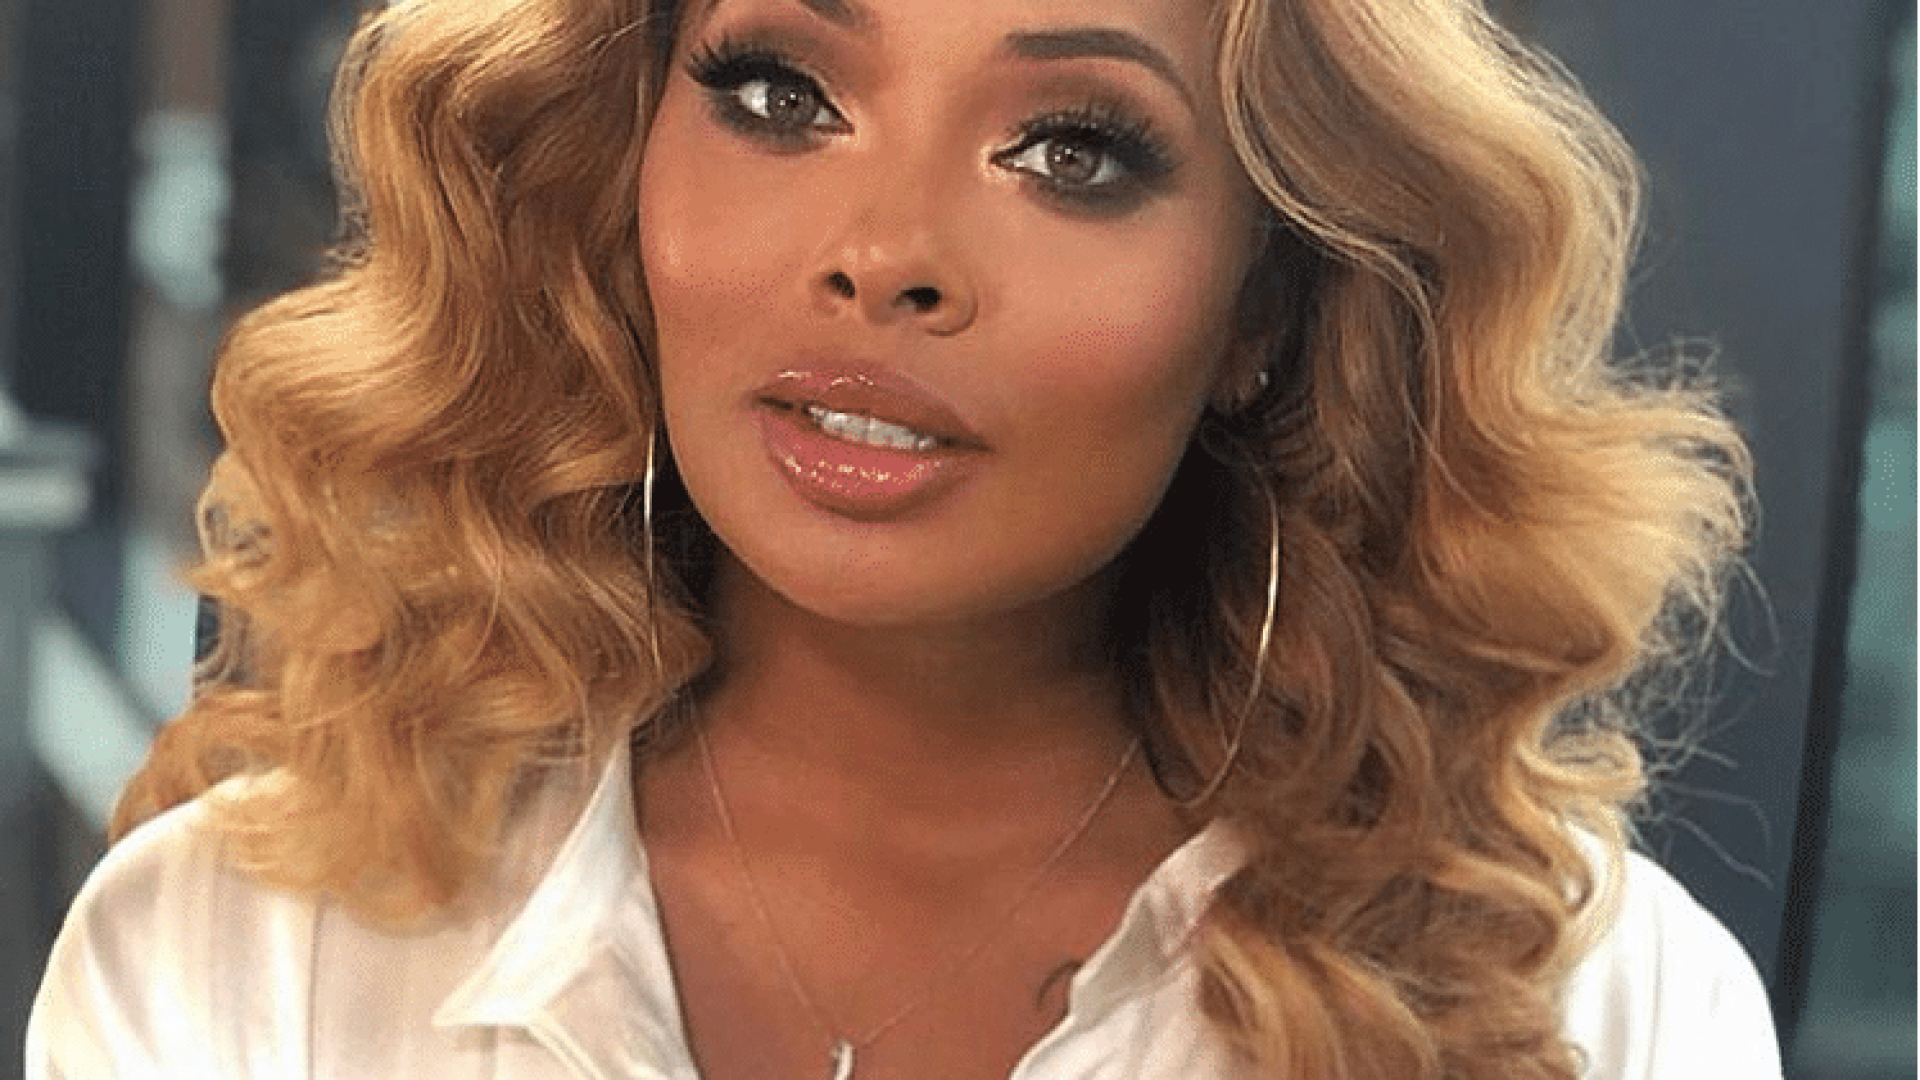 eva-marcille-tells-fans-that-love-wins-and-she-shows-her-gratitude-in-public-check-out-her-message